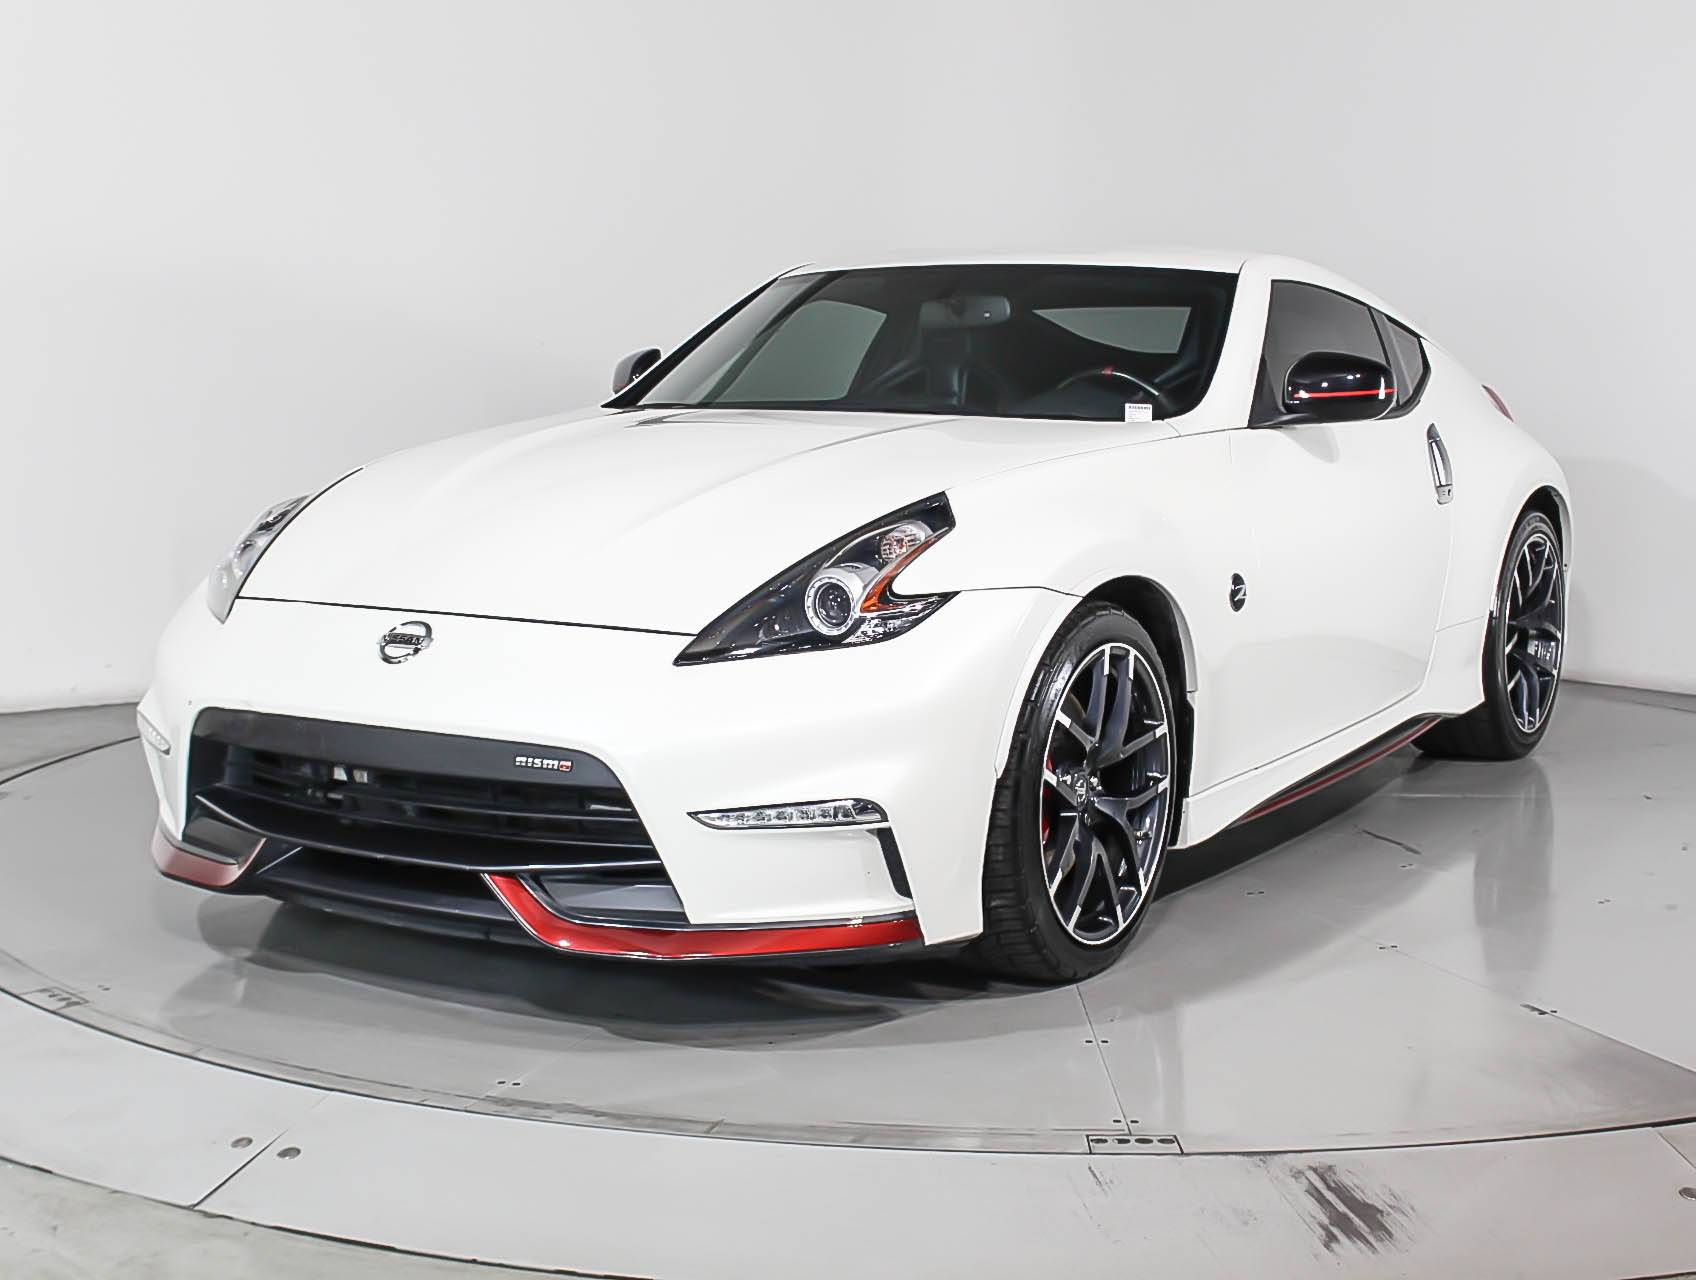 Used 2016 Nissan 370z Nismo Tech Coupe For Sale In Hollywood Fl